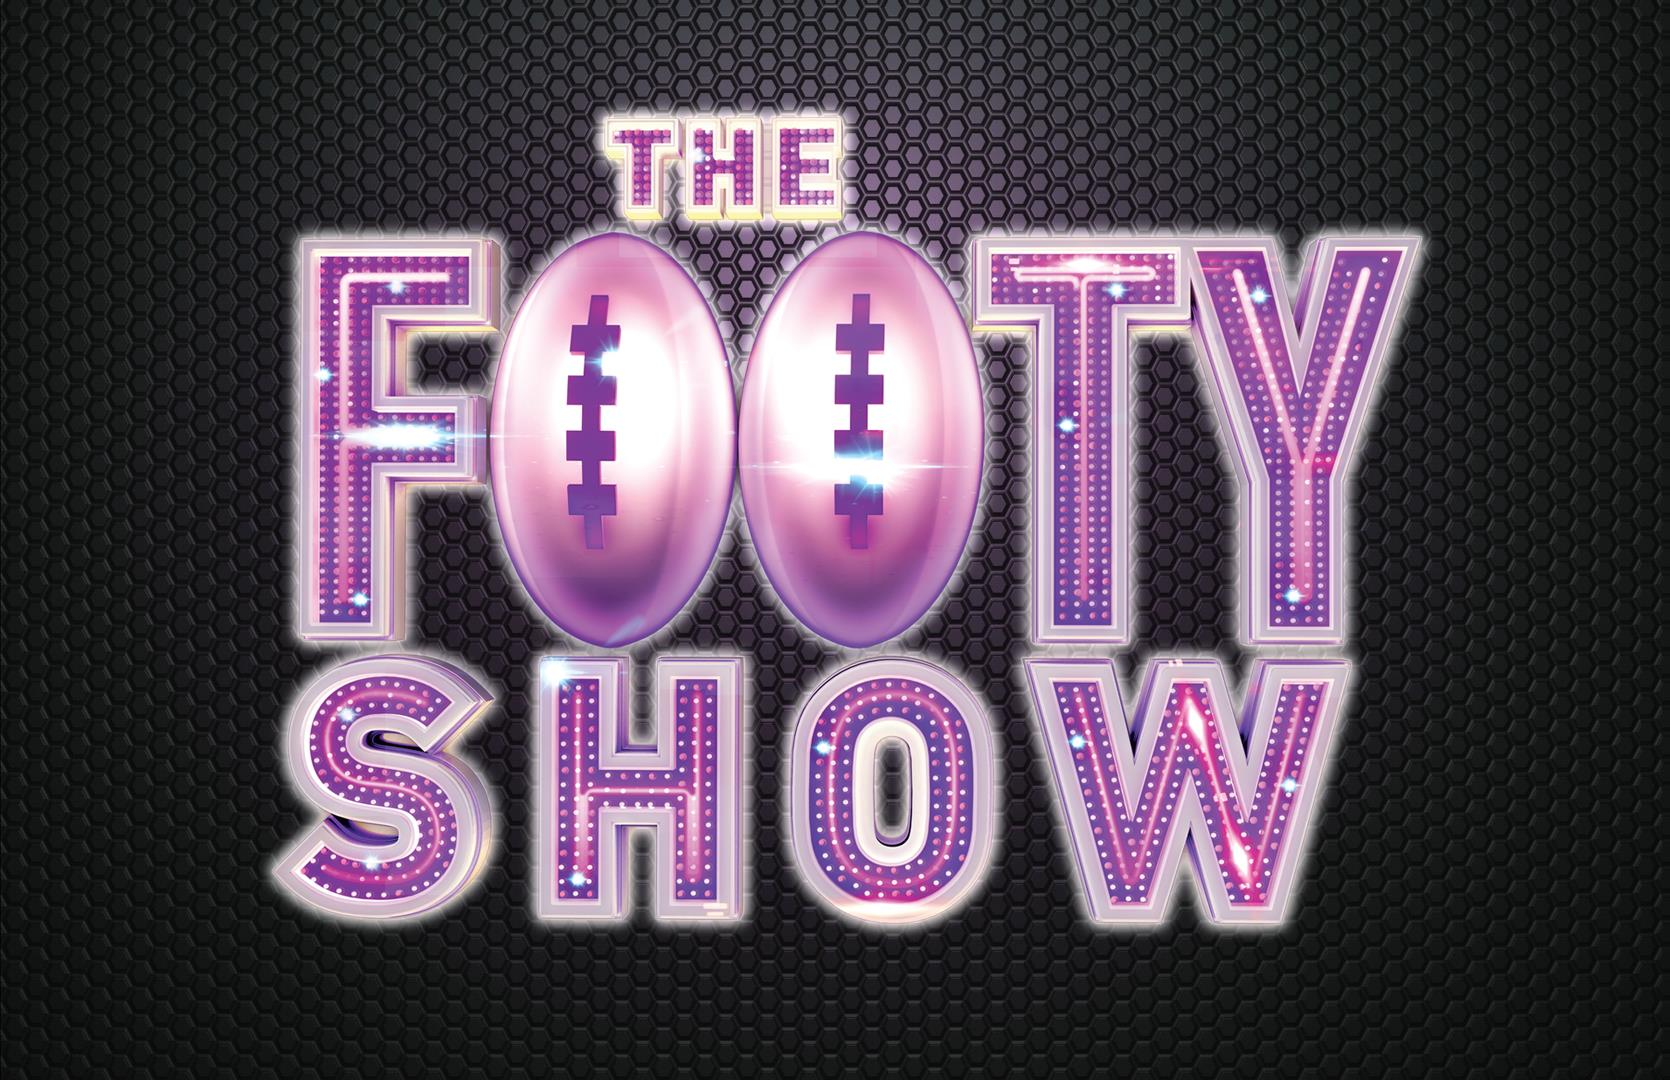 The NRL Footy Show: Main Image